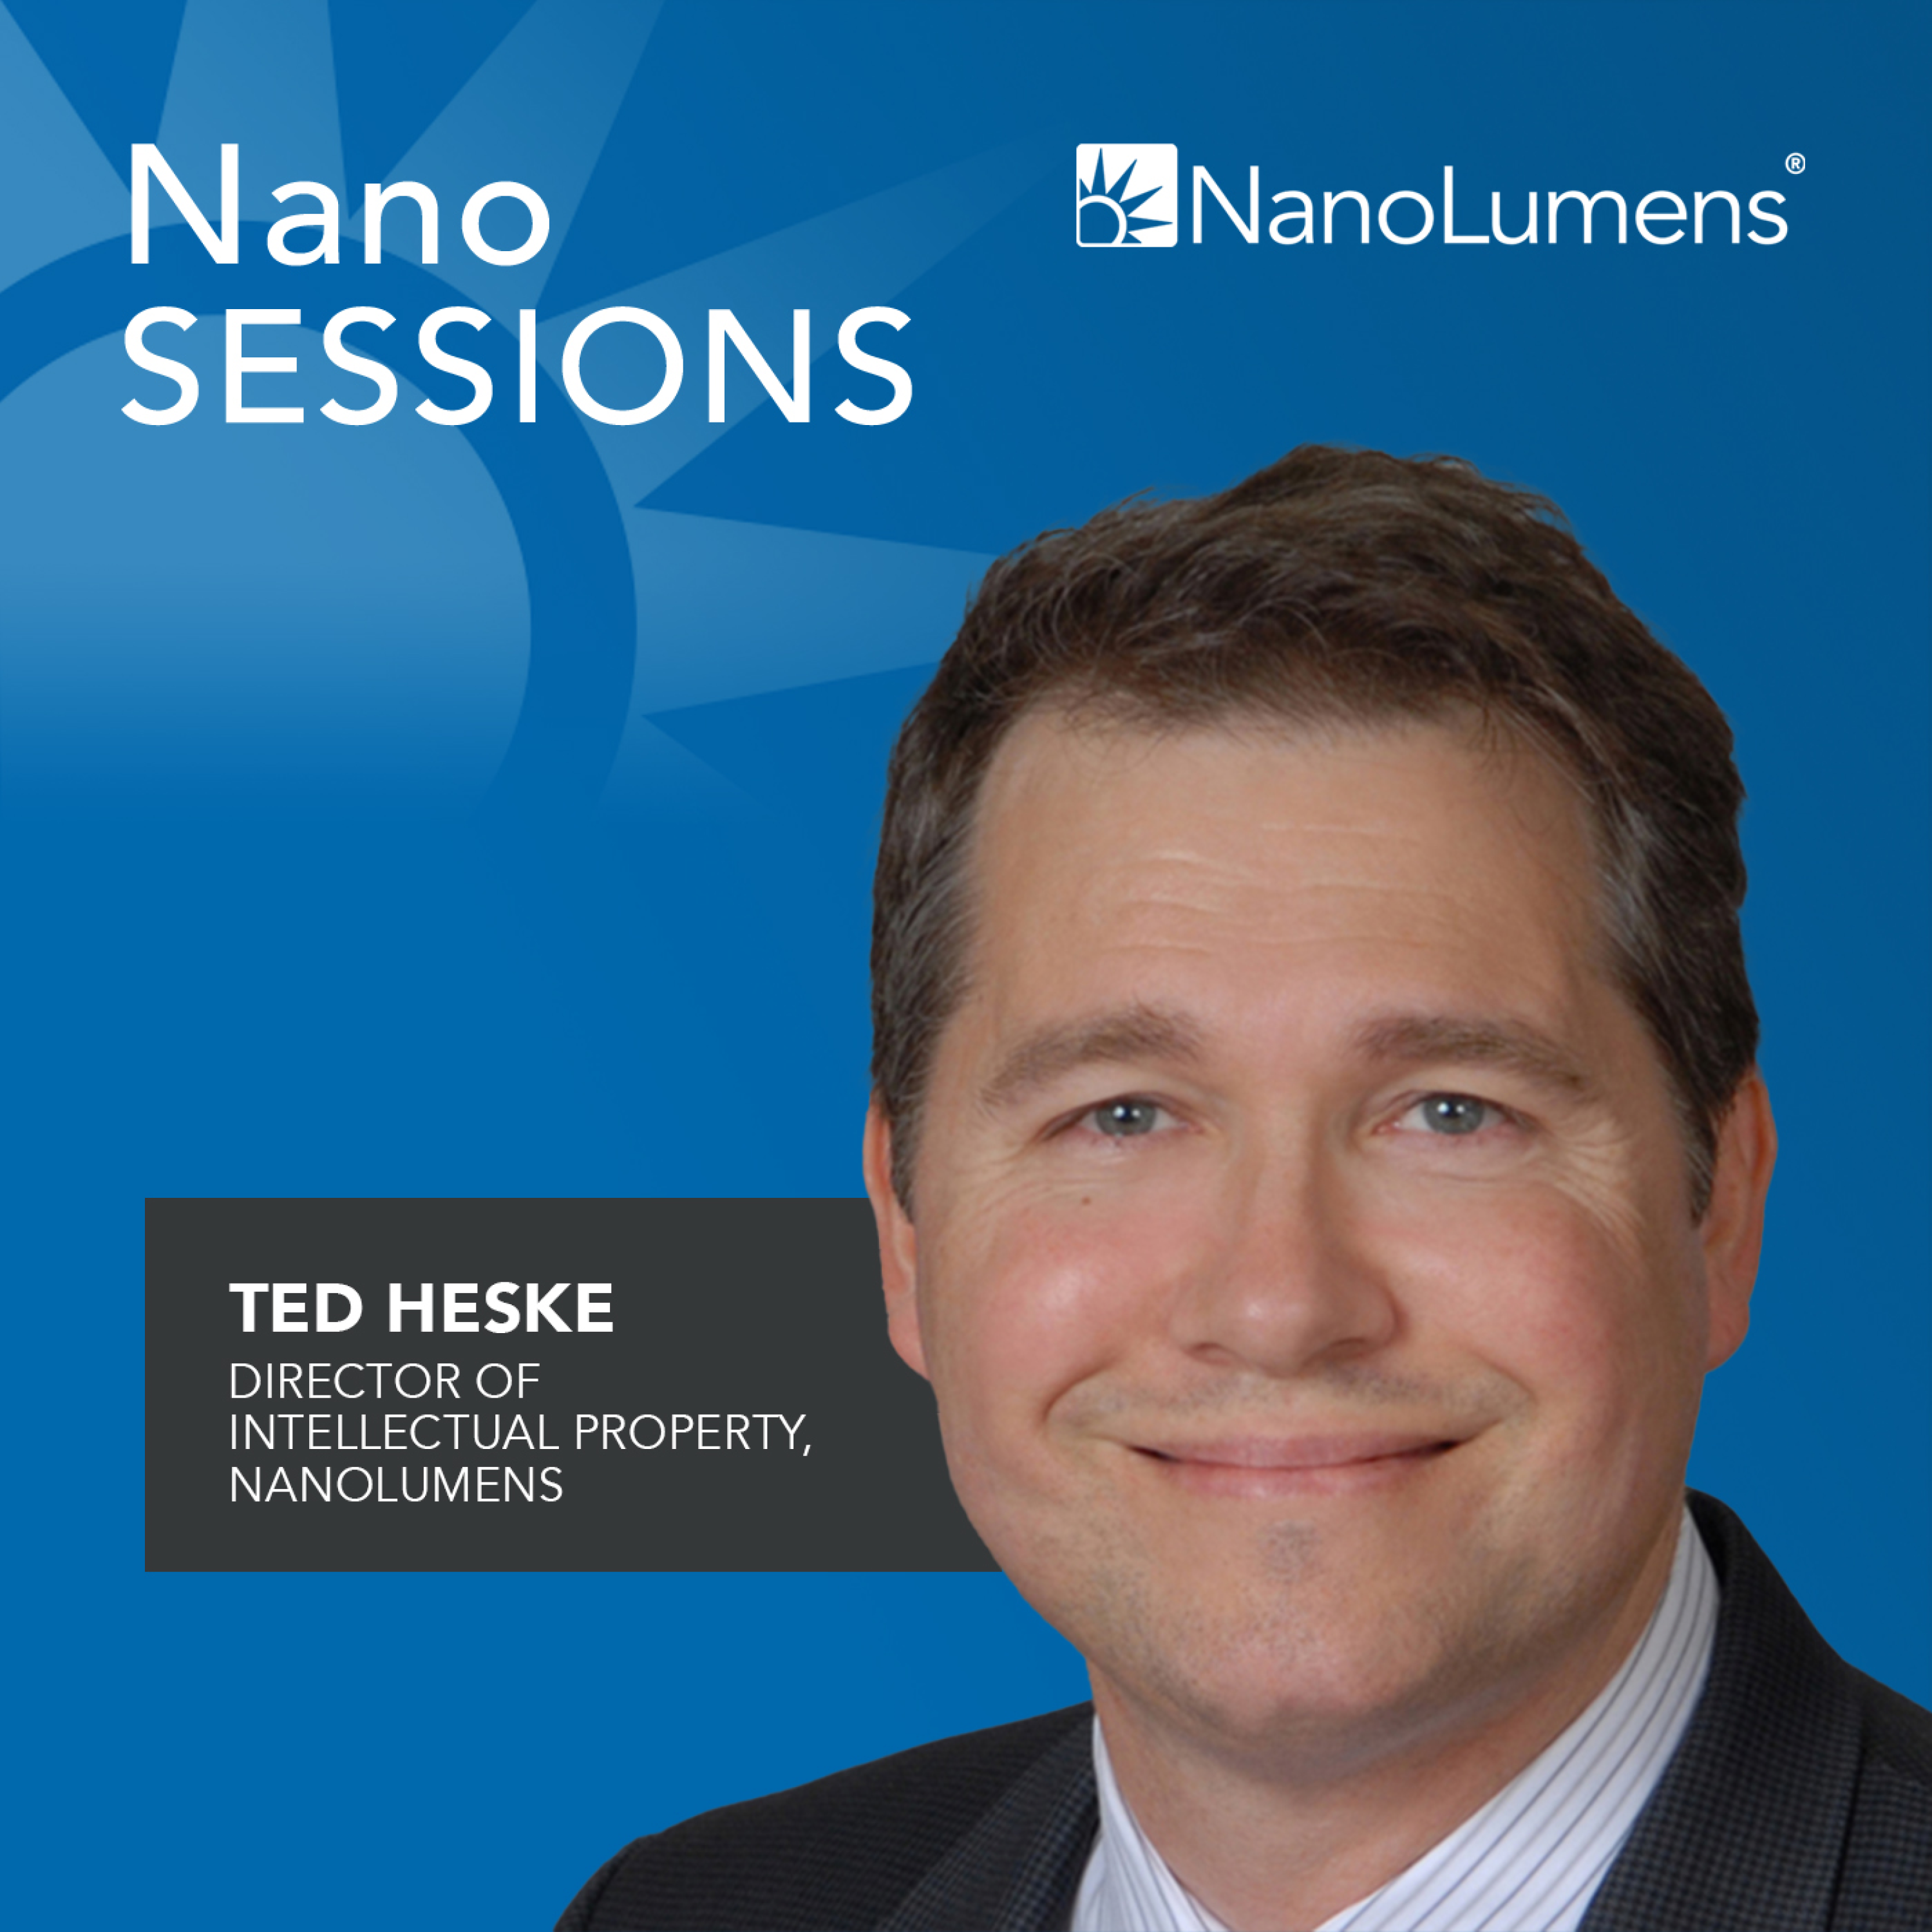 The Intellectual Property Behind Each NanoLumens Display with Ted Heske